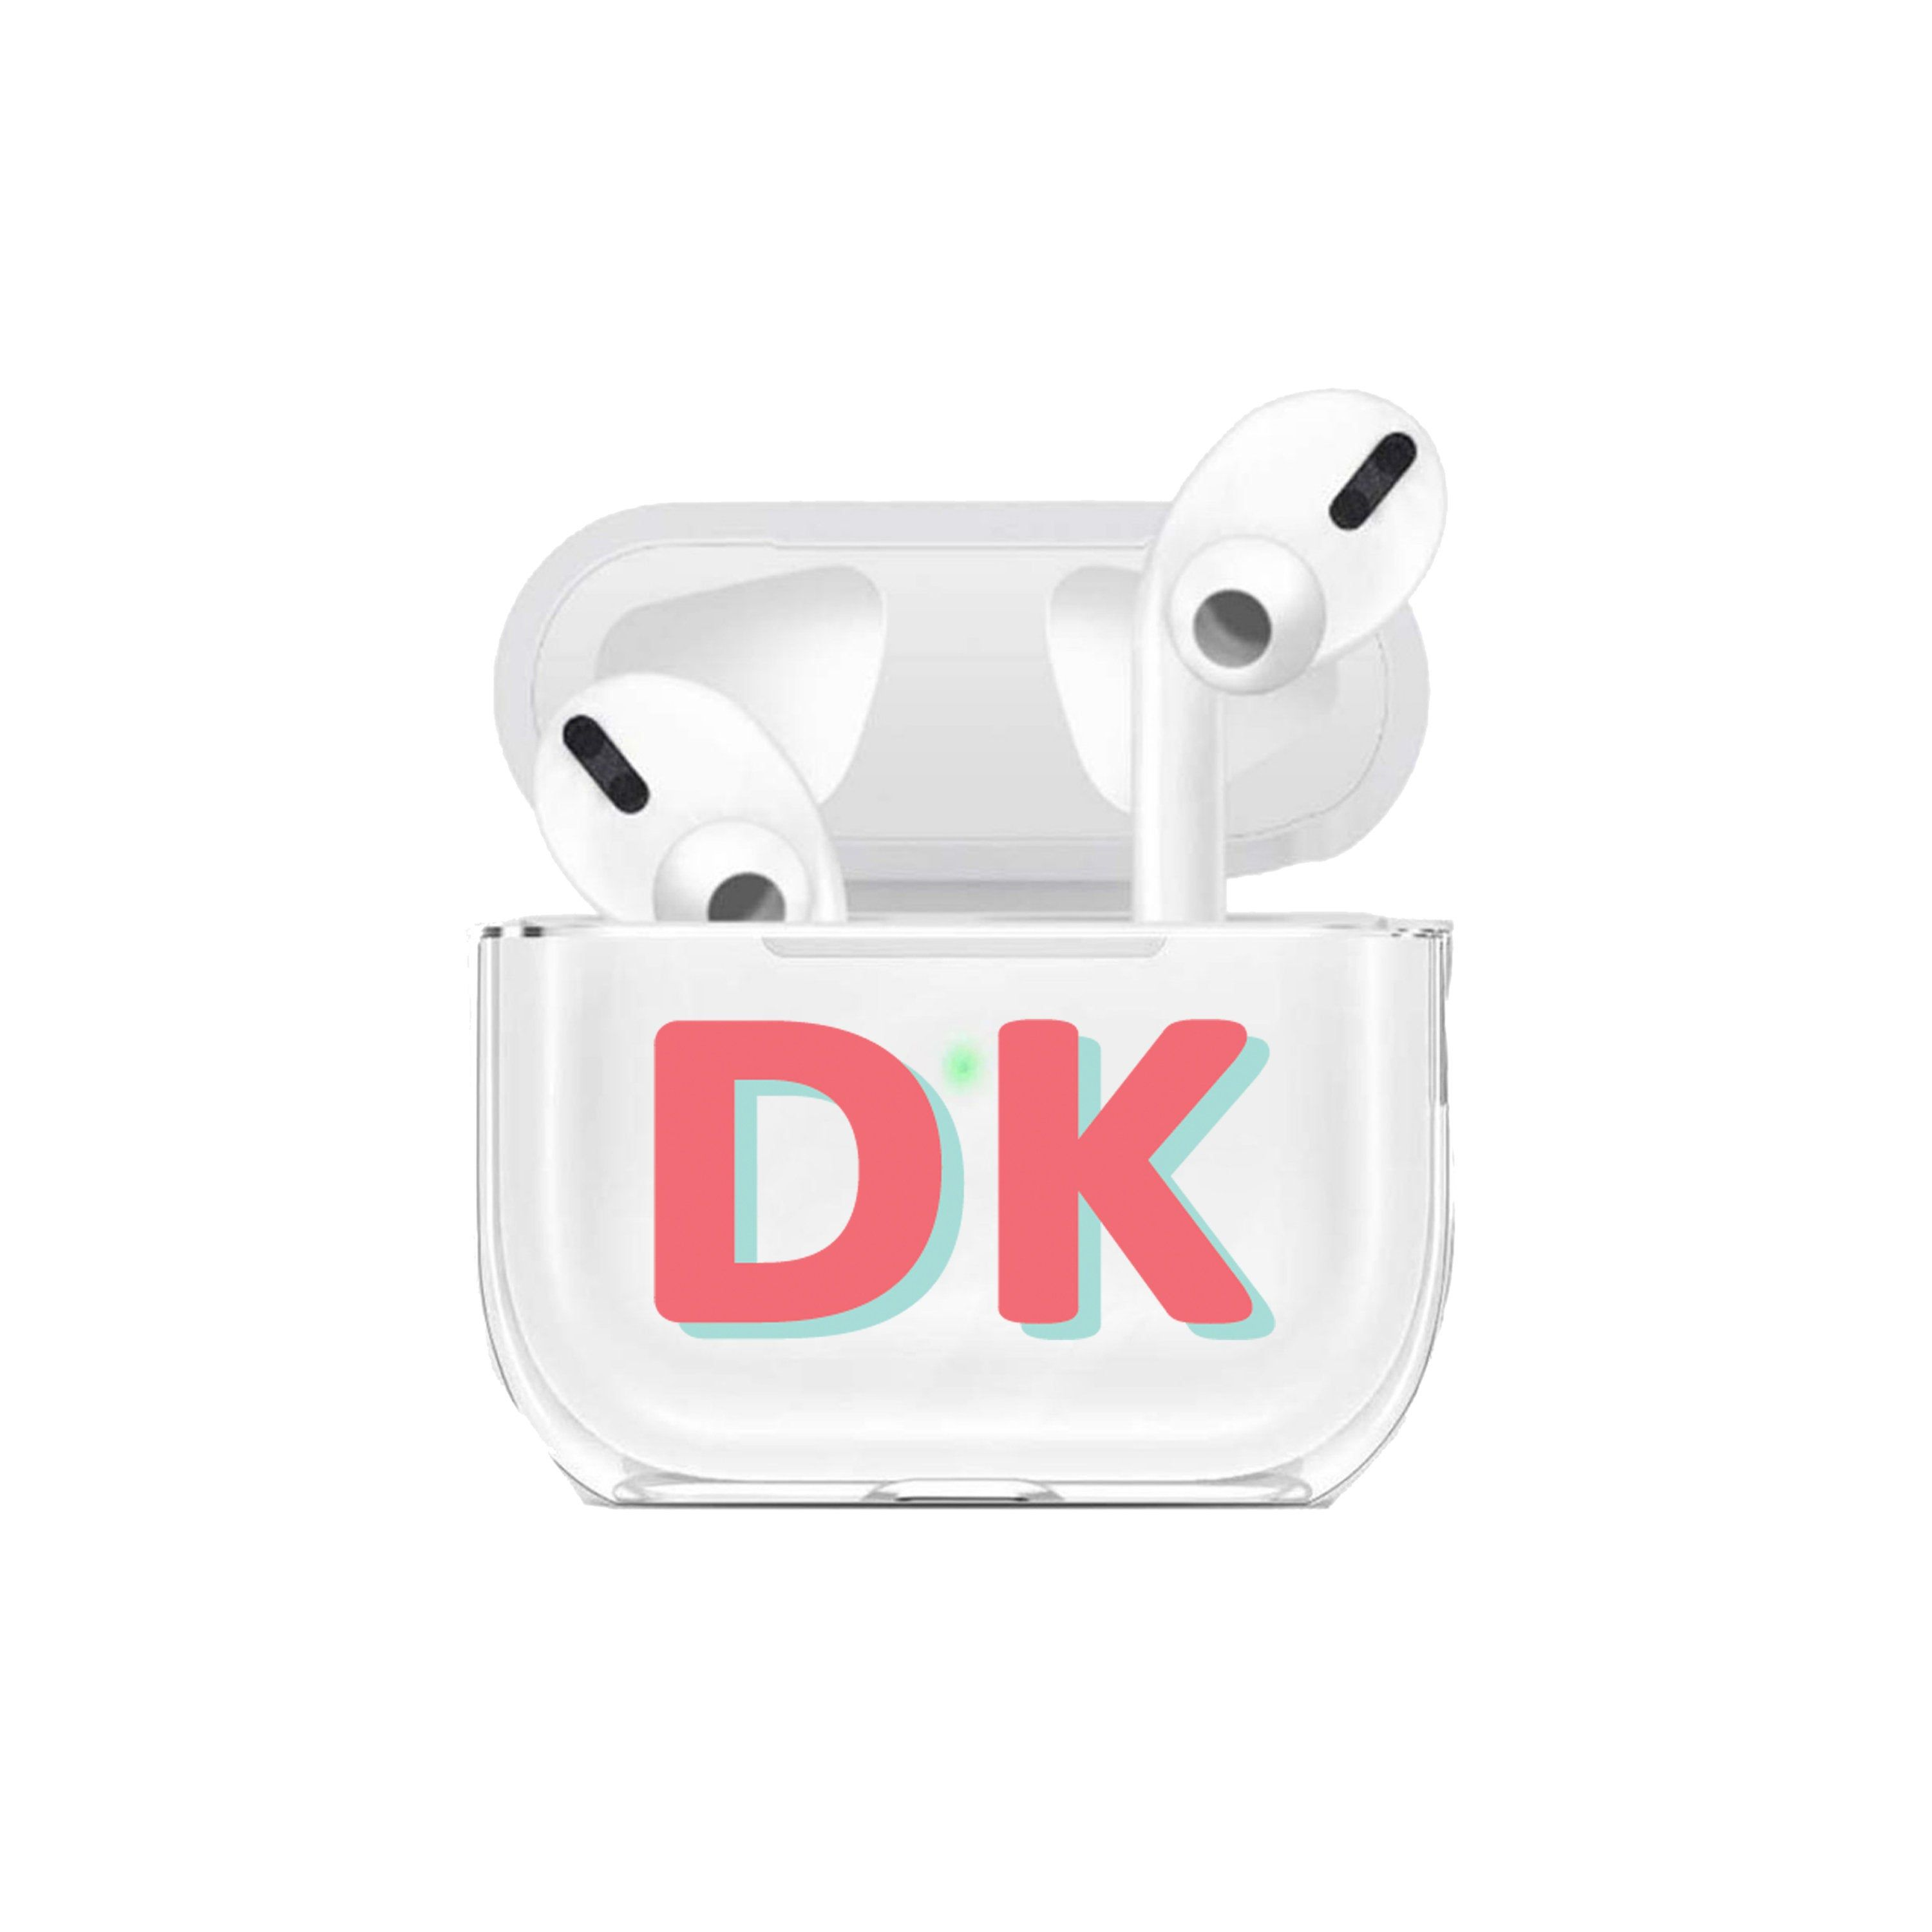 Customized Initials Airpods Pro Case Name And Letter Airpods Pro Case Personalized Gift Color Block Letters Air Pod Pro Case Cute C Block Lettering Case Custom